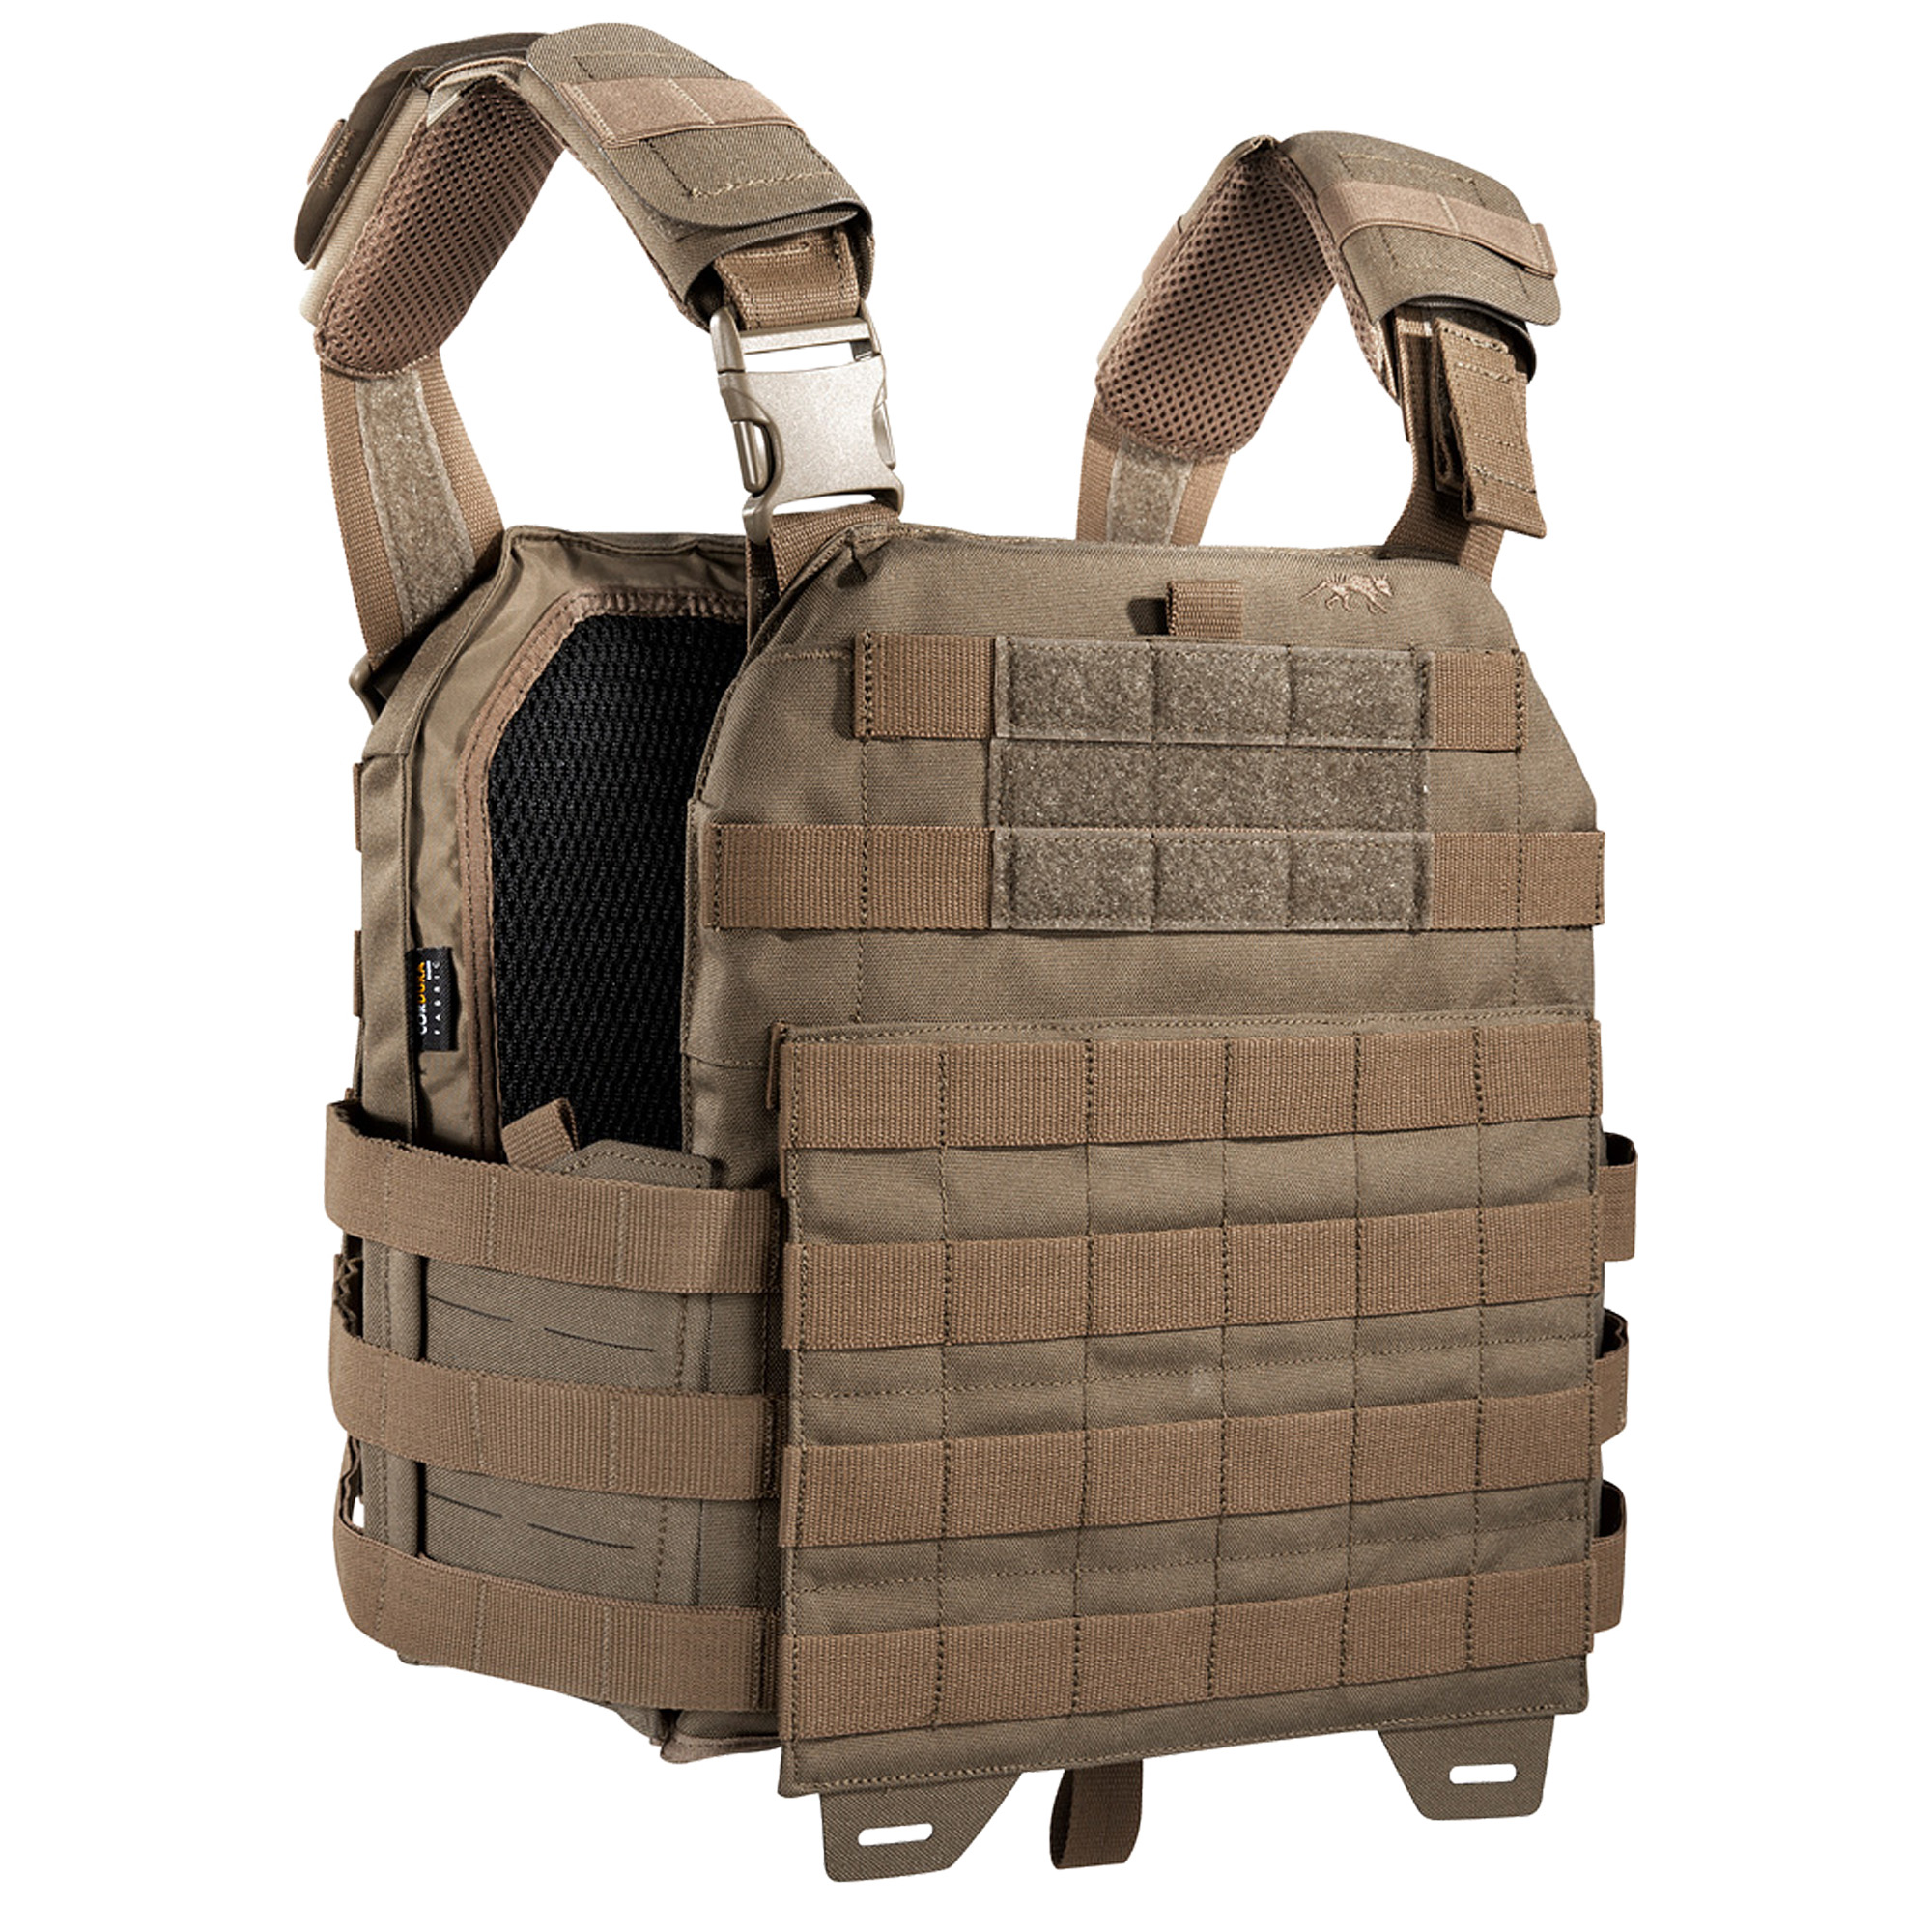 Tasmanian Tiger Plate Carrier MK IV coyote brown